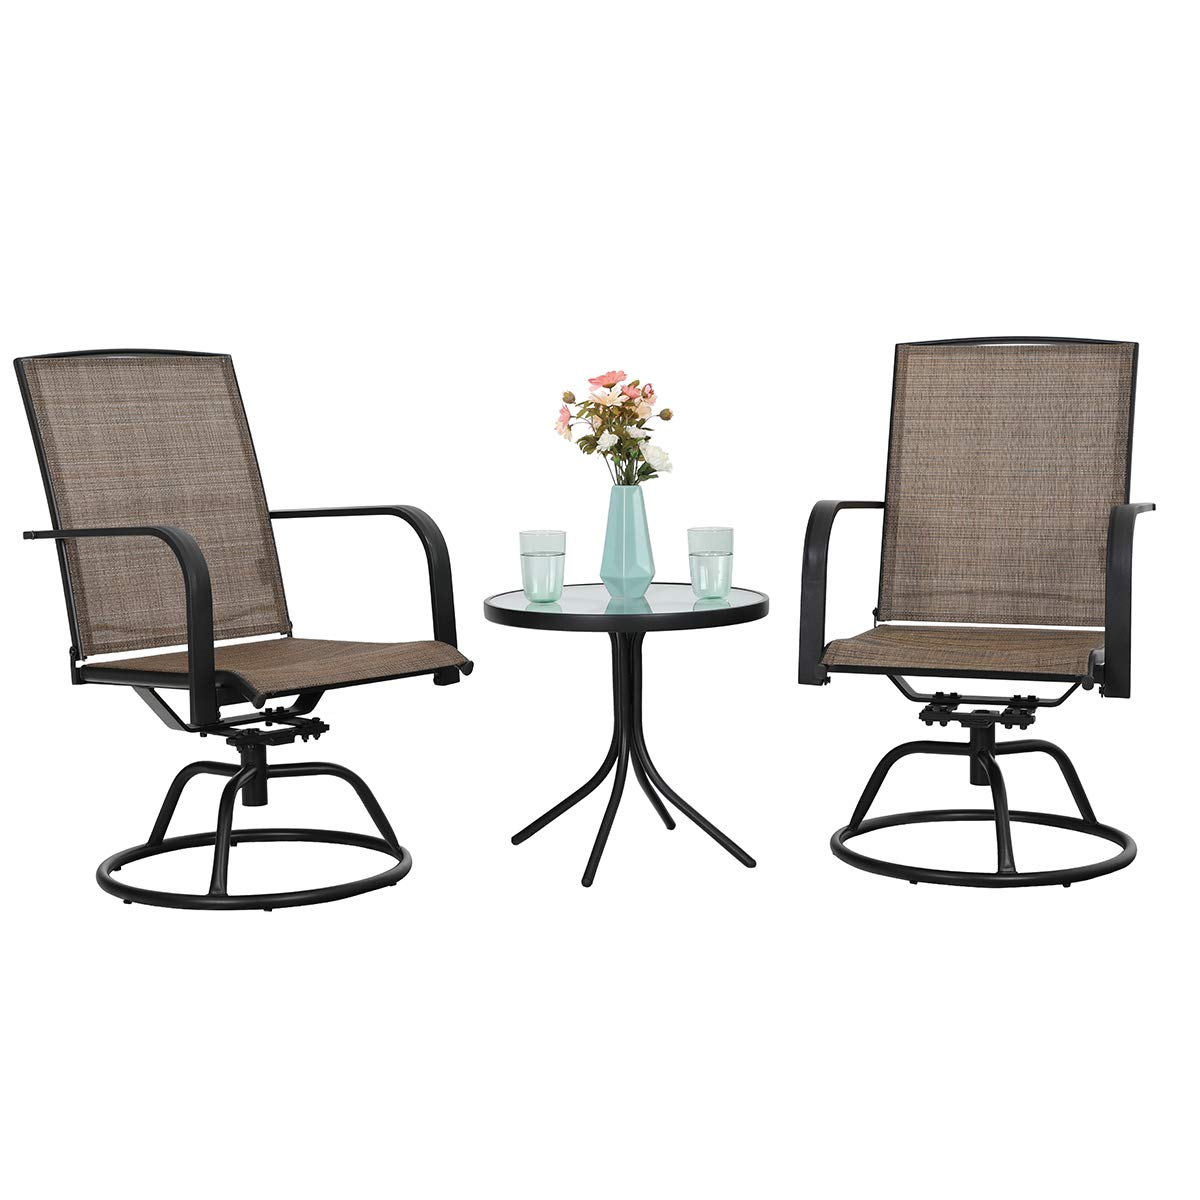 Phi Villa Swivel Chairs Set